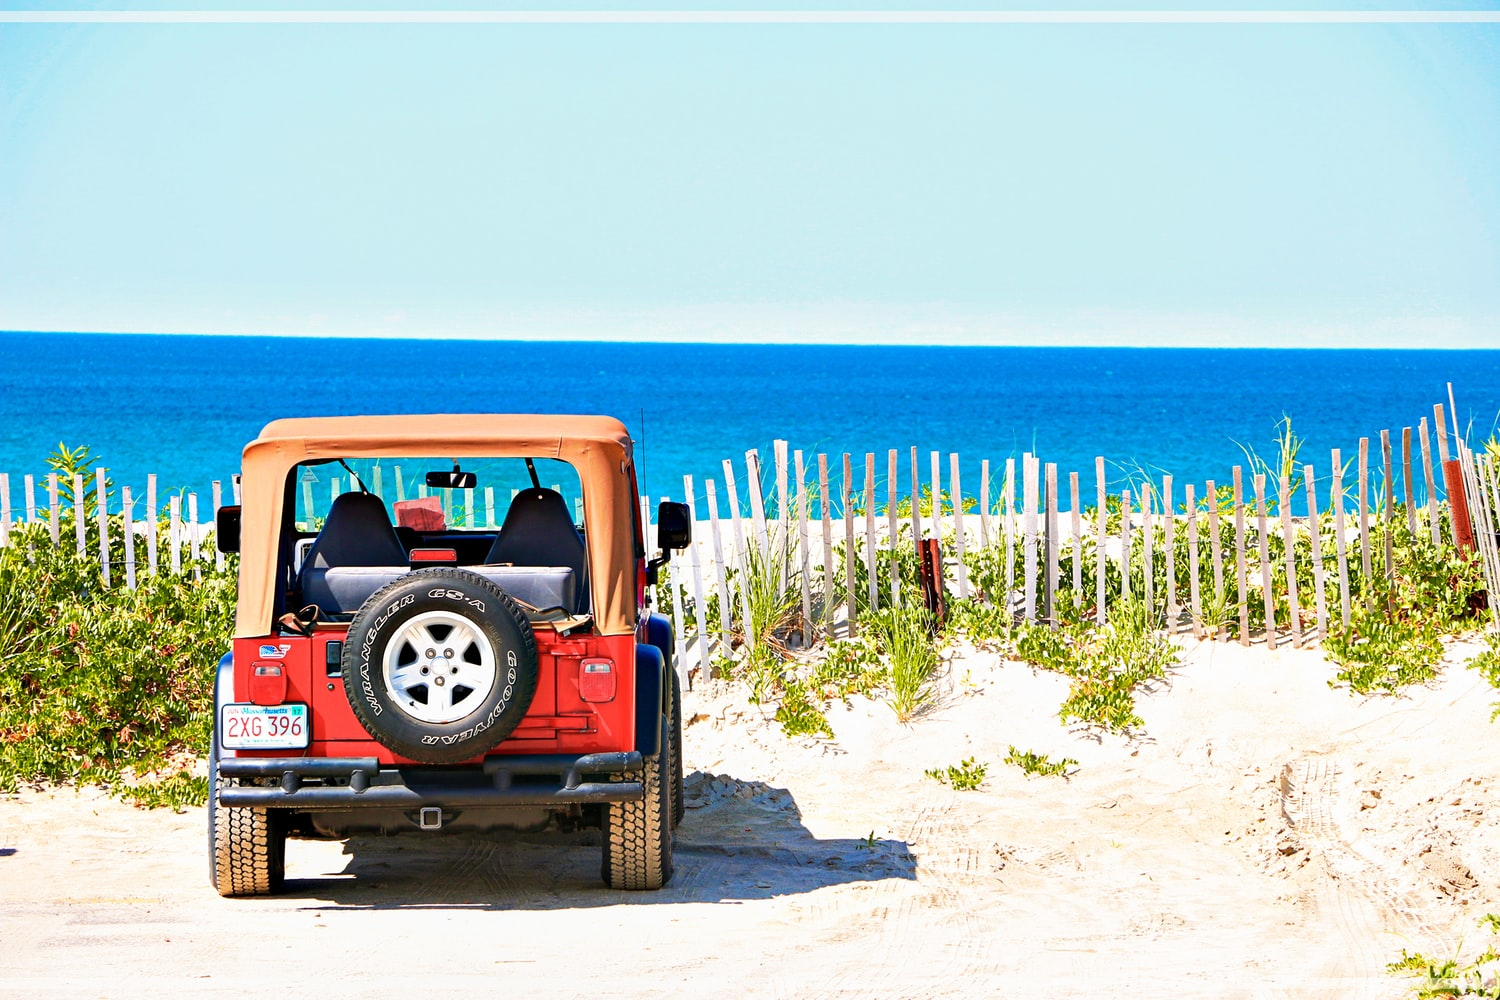 Jeep with Massachusetts plates parked near a beach.